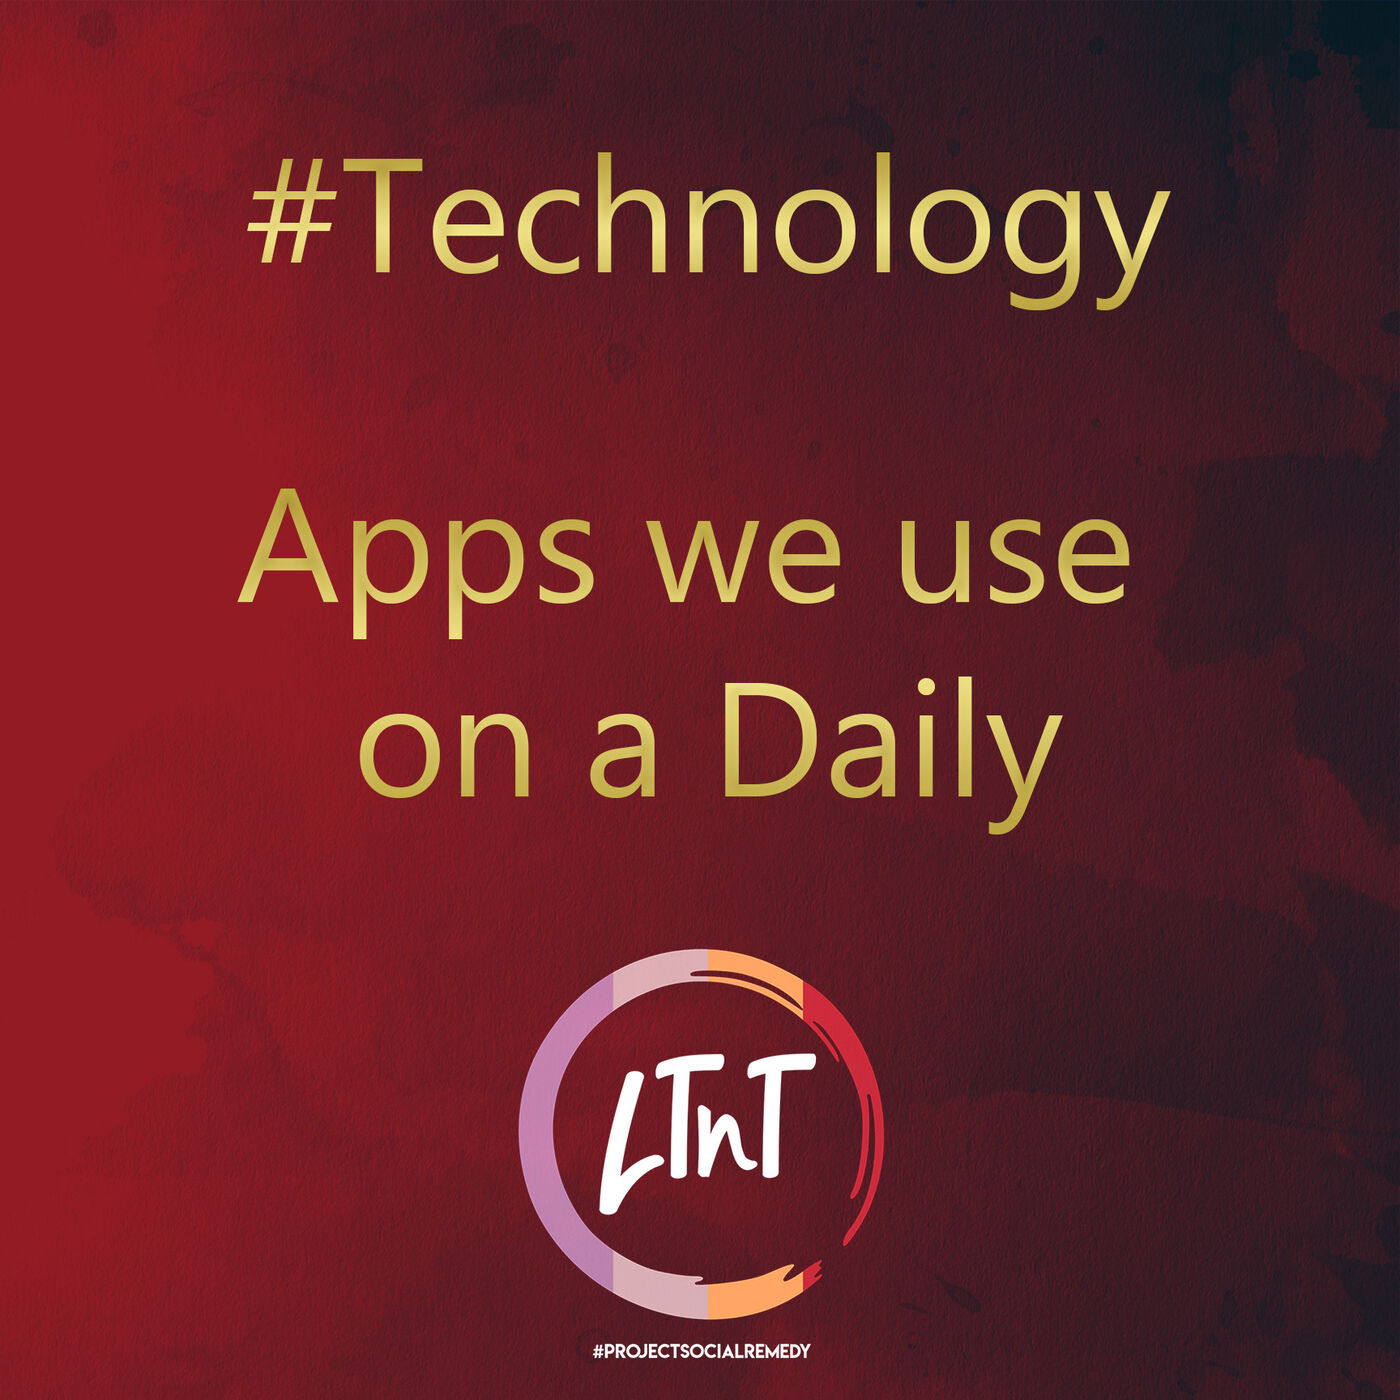 Apps we use on a daily